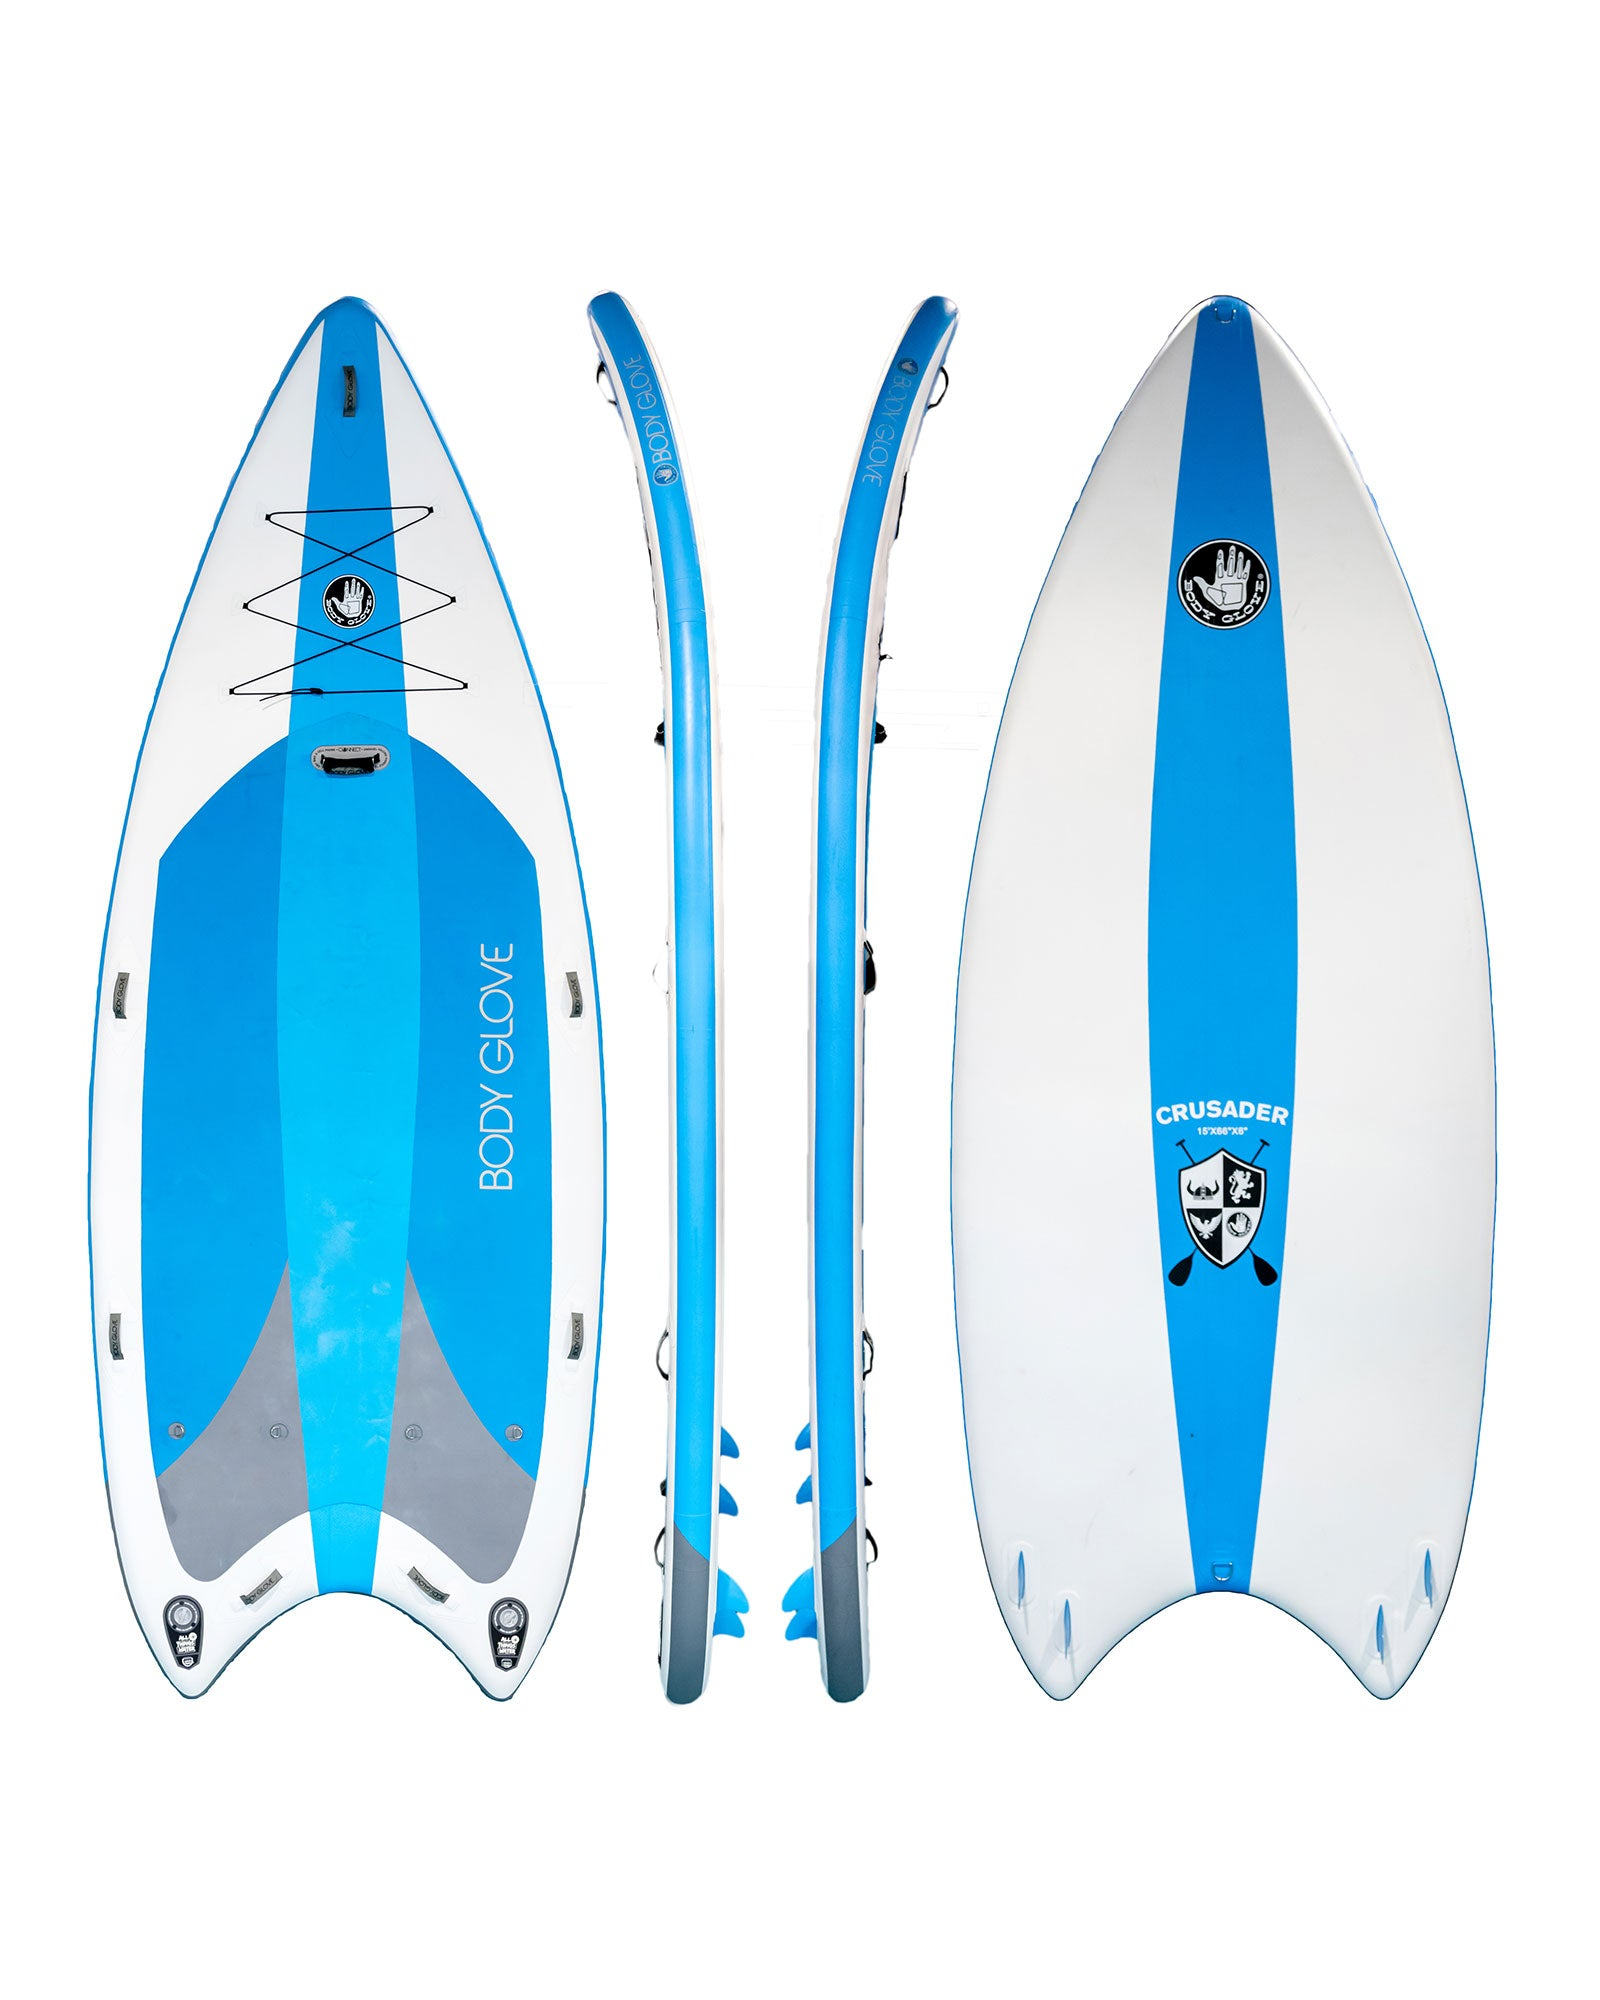 Crusader Multi-Person Inflatable Stand Up Paddle Board Package